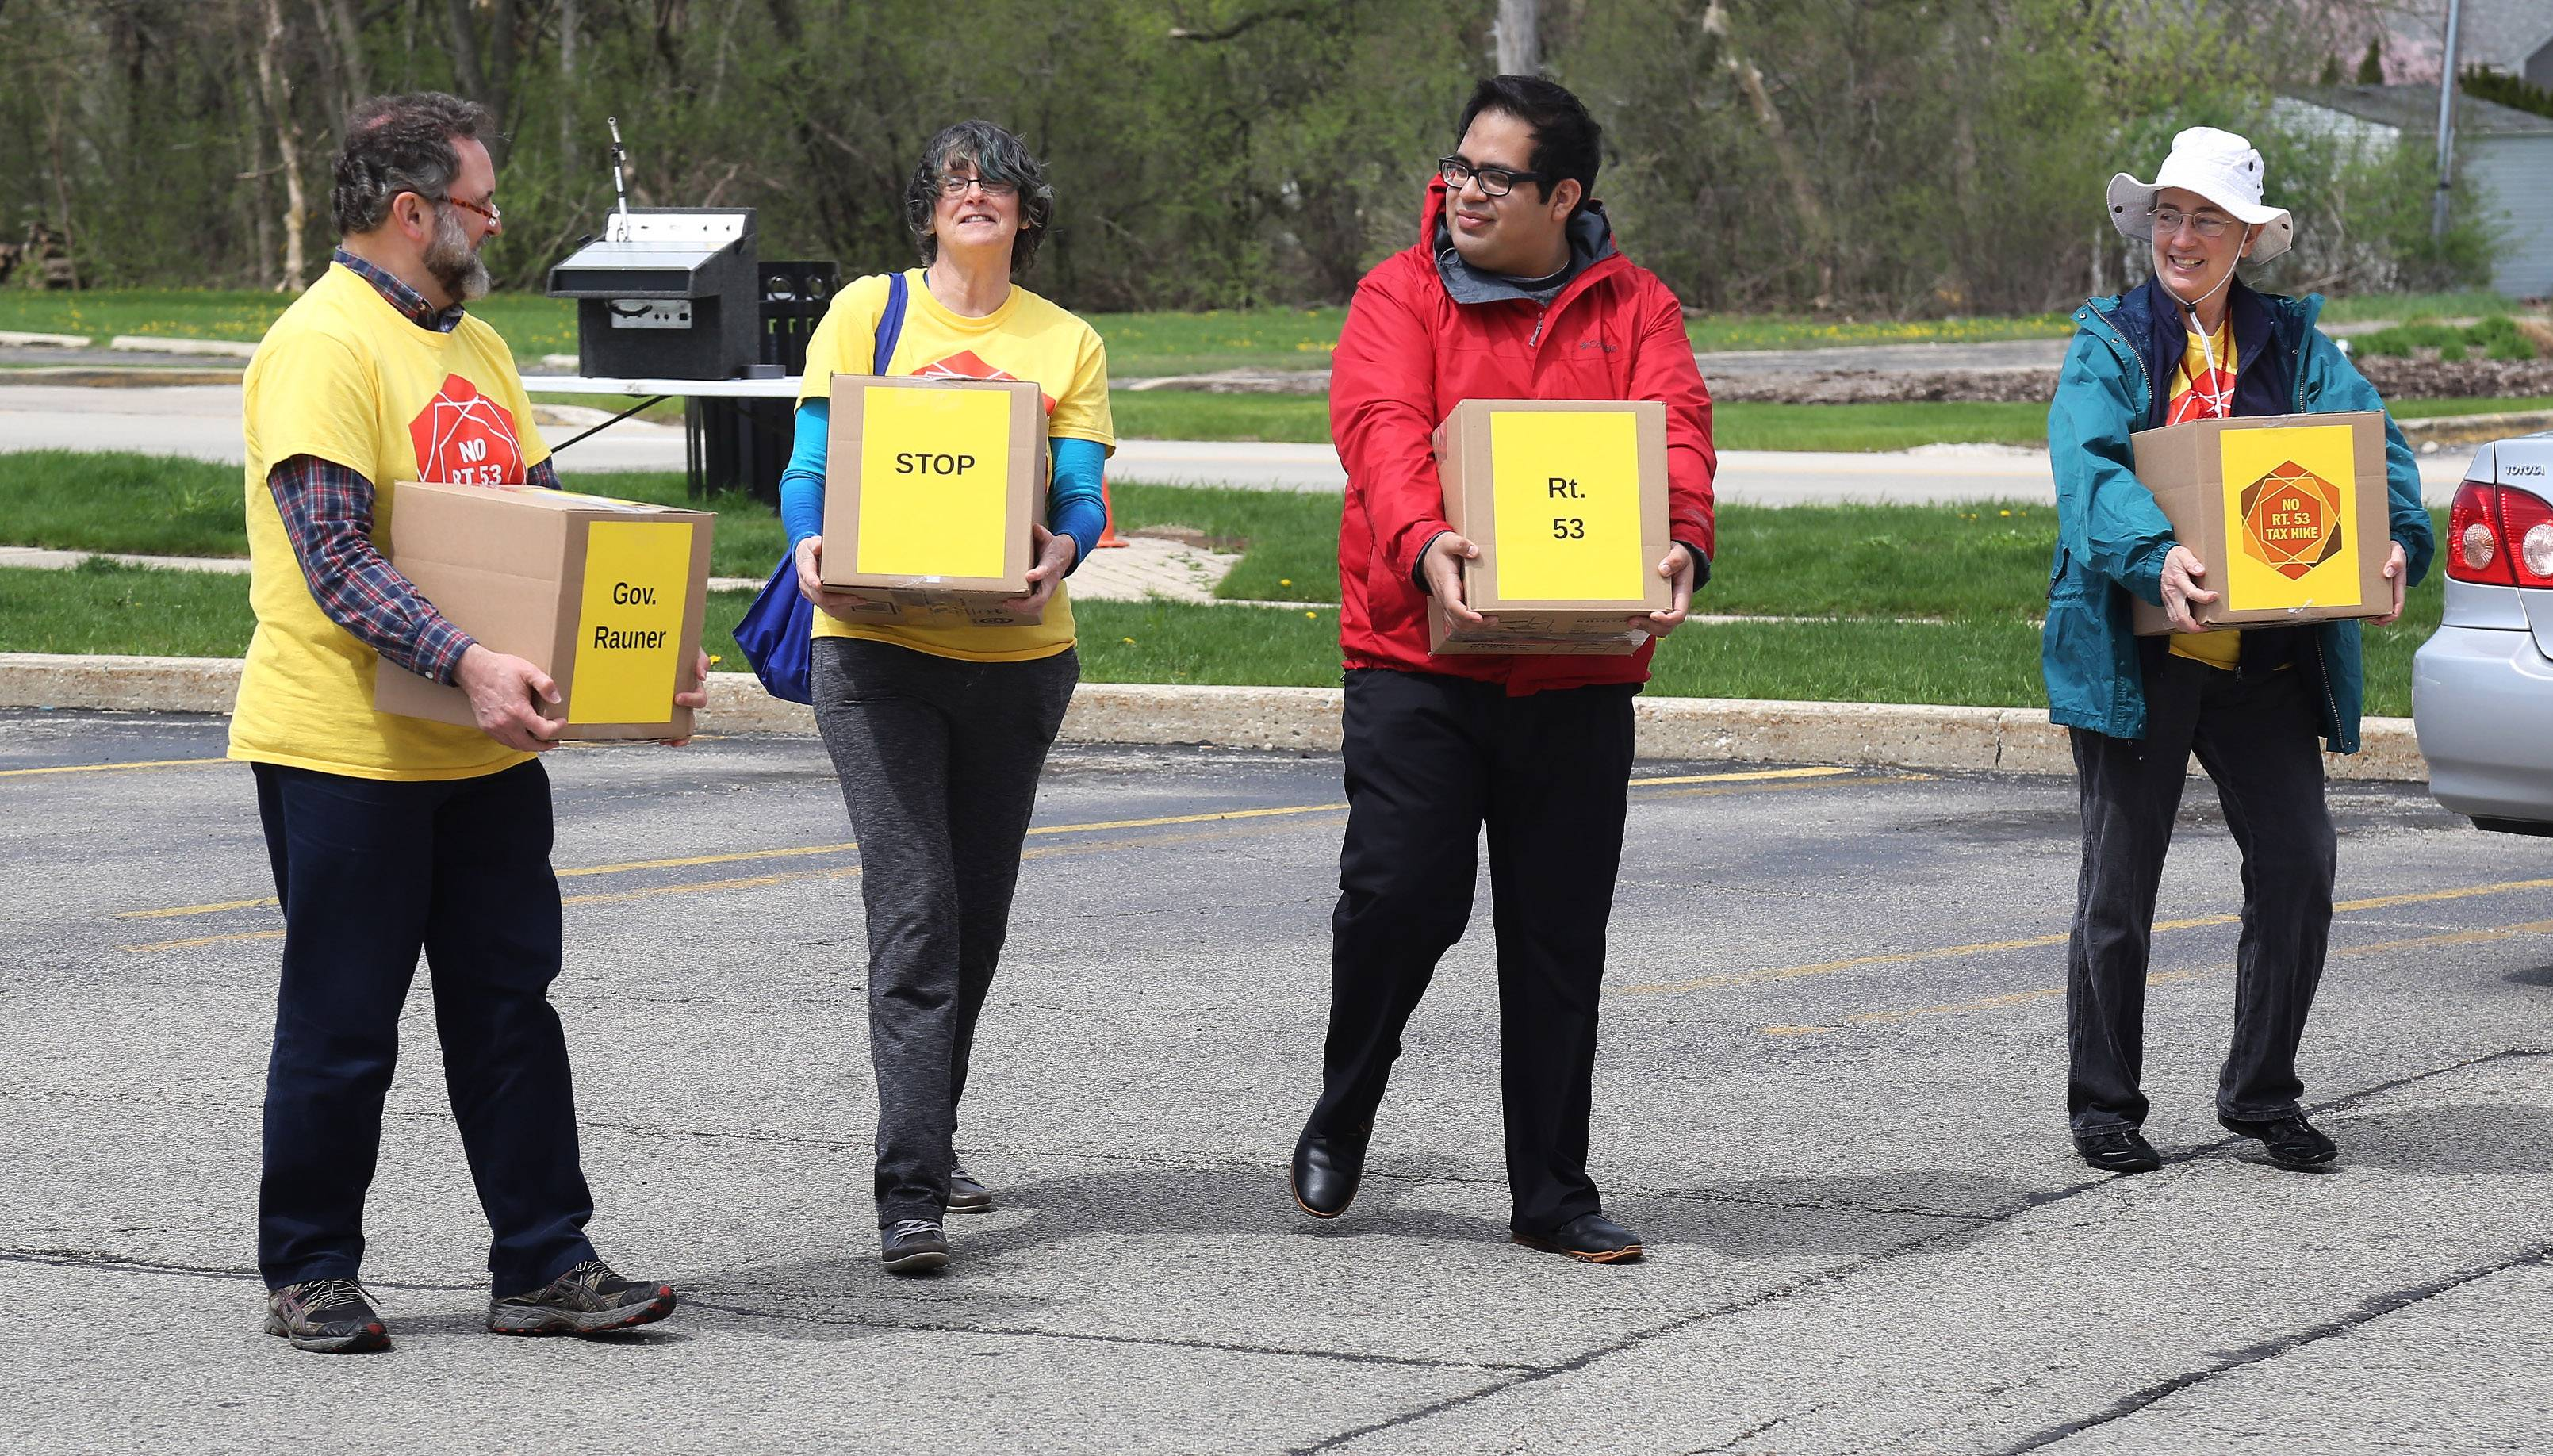 Activists opposed to the Route 53 extension deliver petitions addressed to Gov. Bruce Rauner on Thursday at the Mundelein post office. Opponents say the proposed road would pollute the air and nearby preserves.